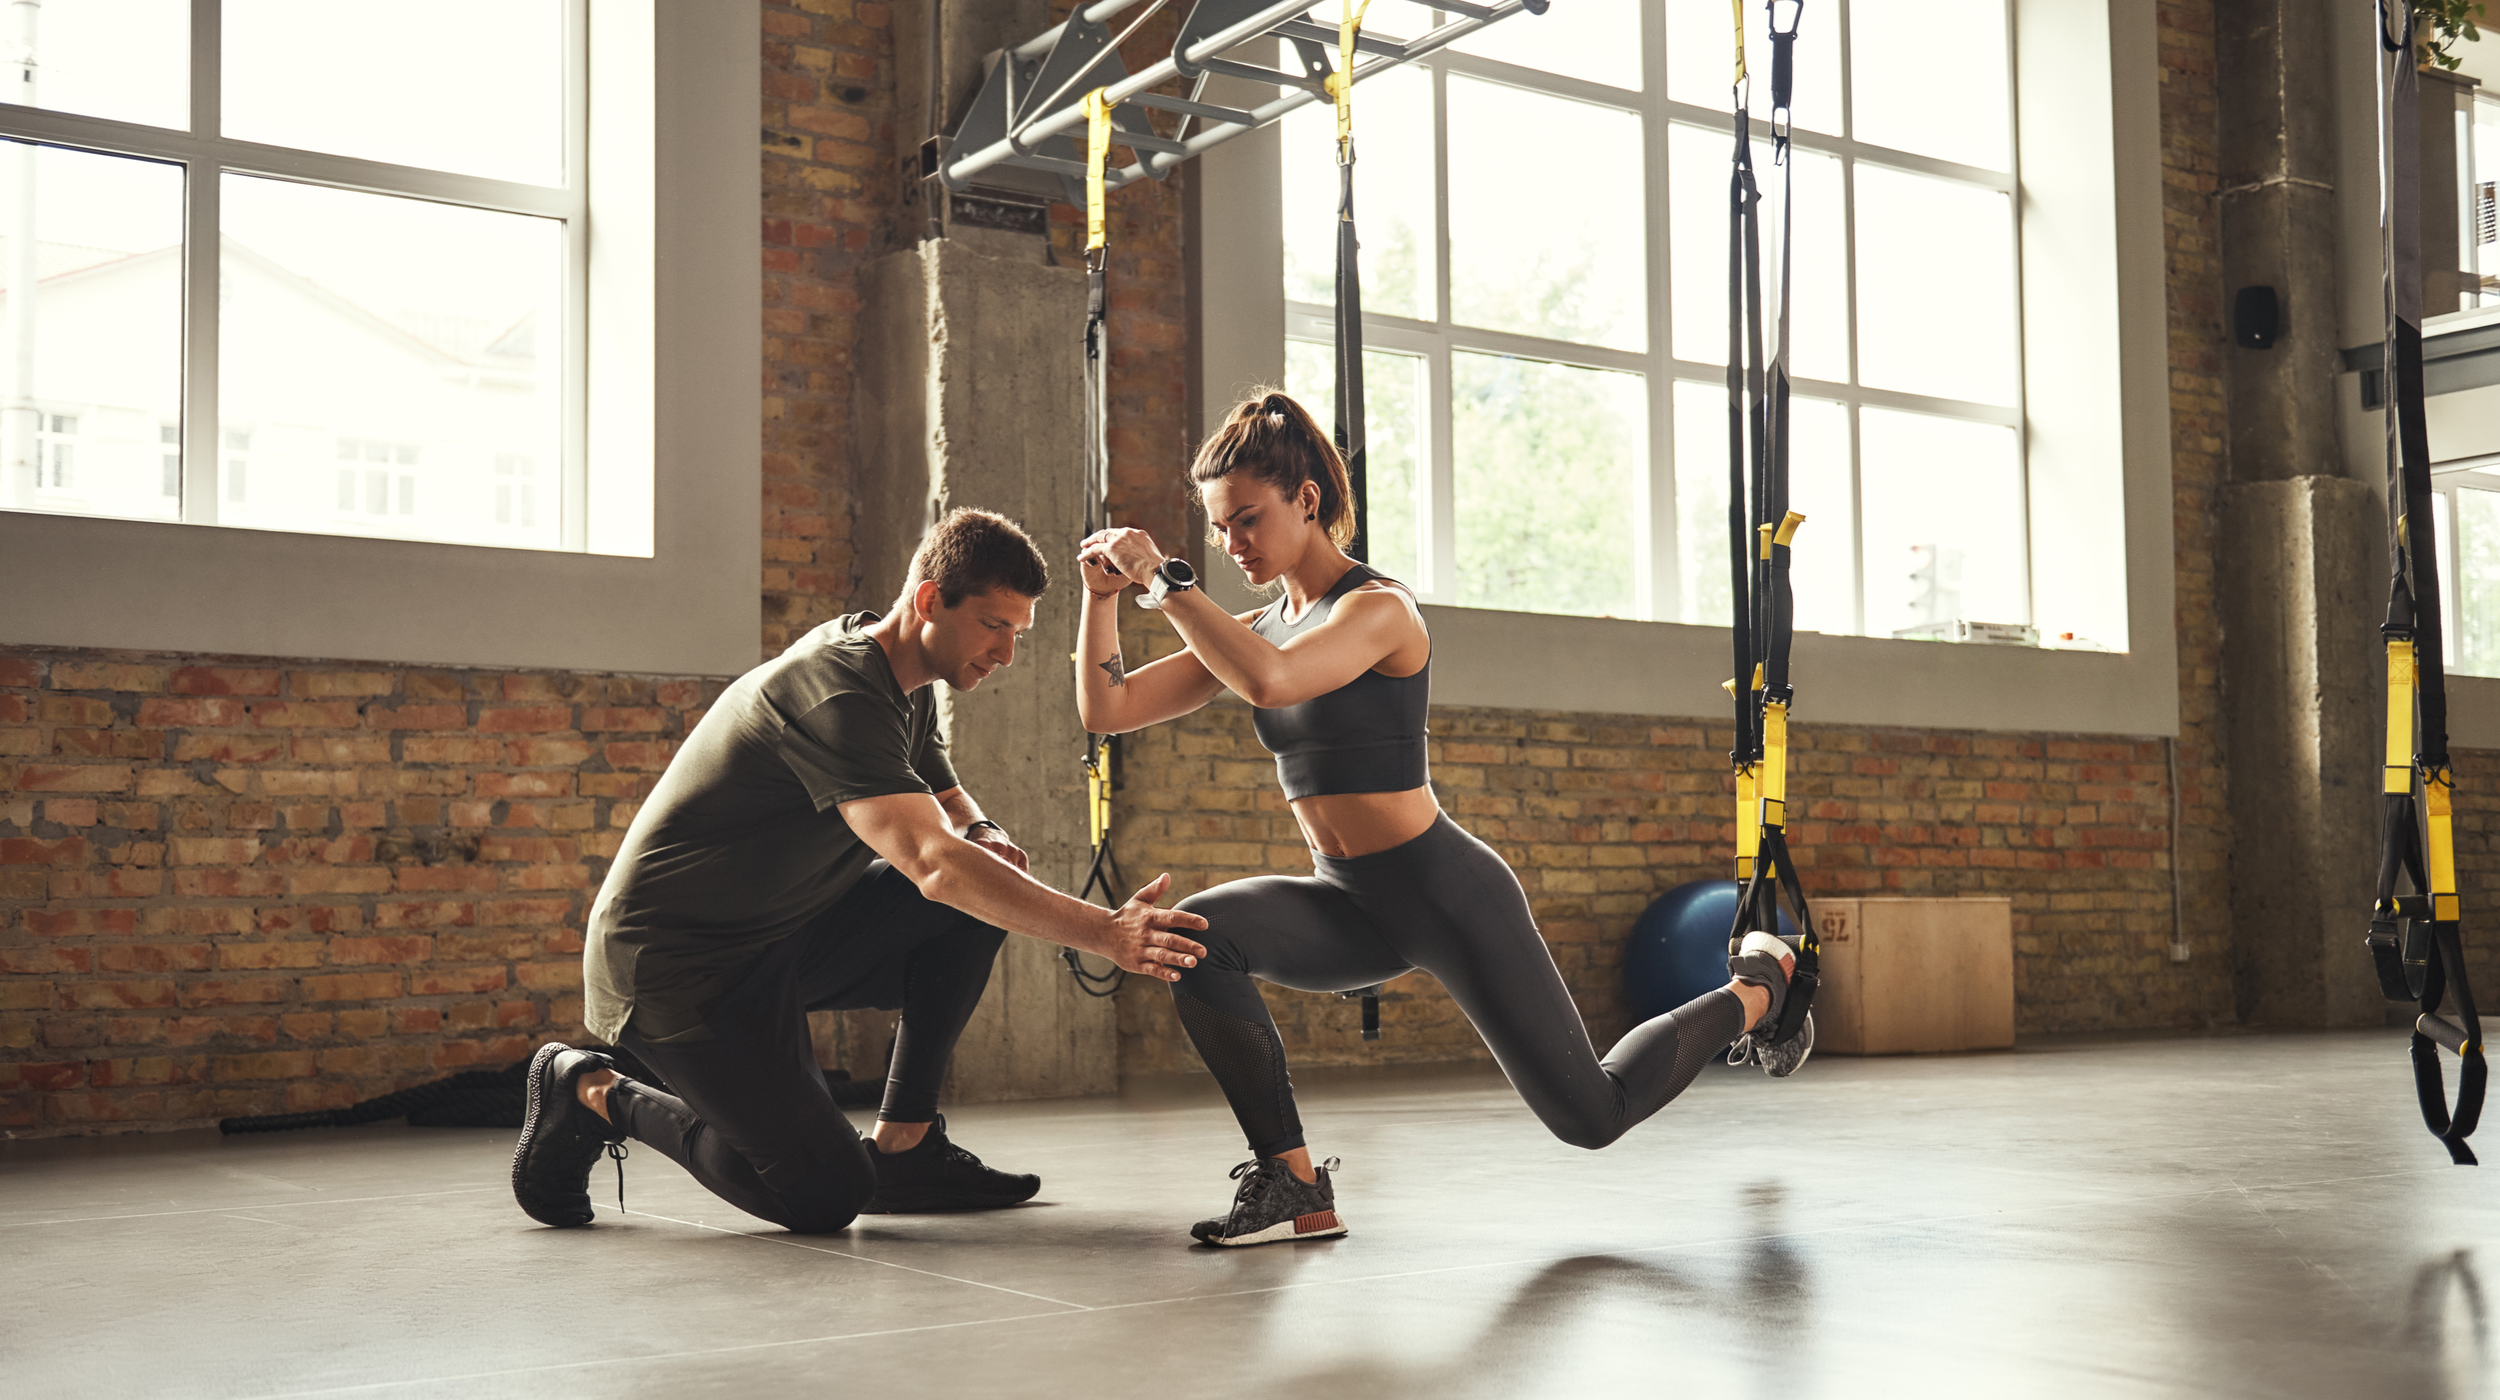 Top 3 Things You Need to do to be a Successful Personal Trainer